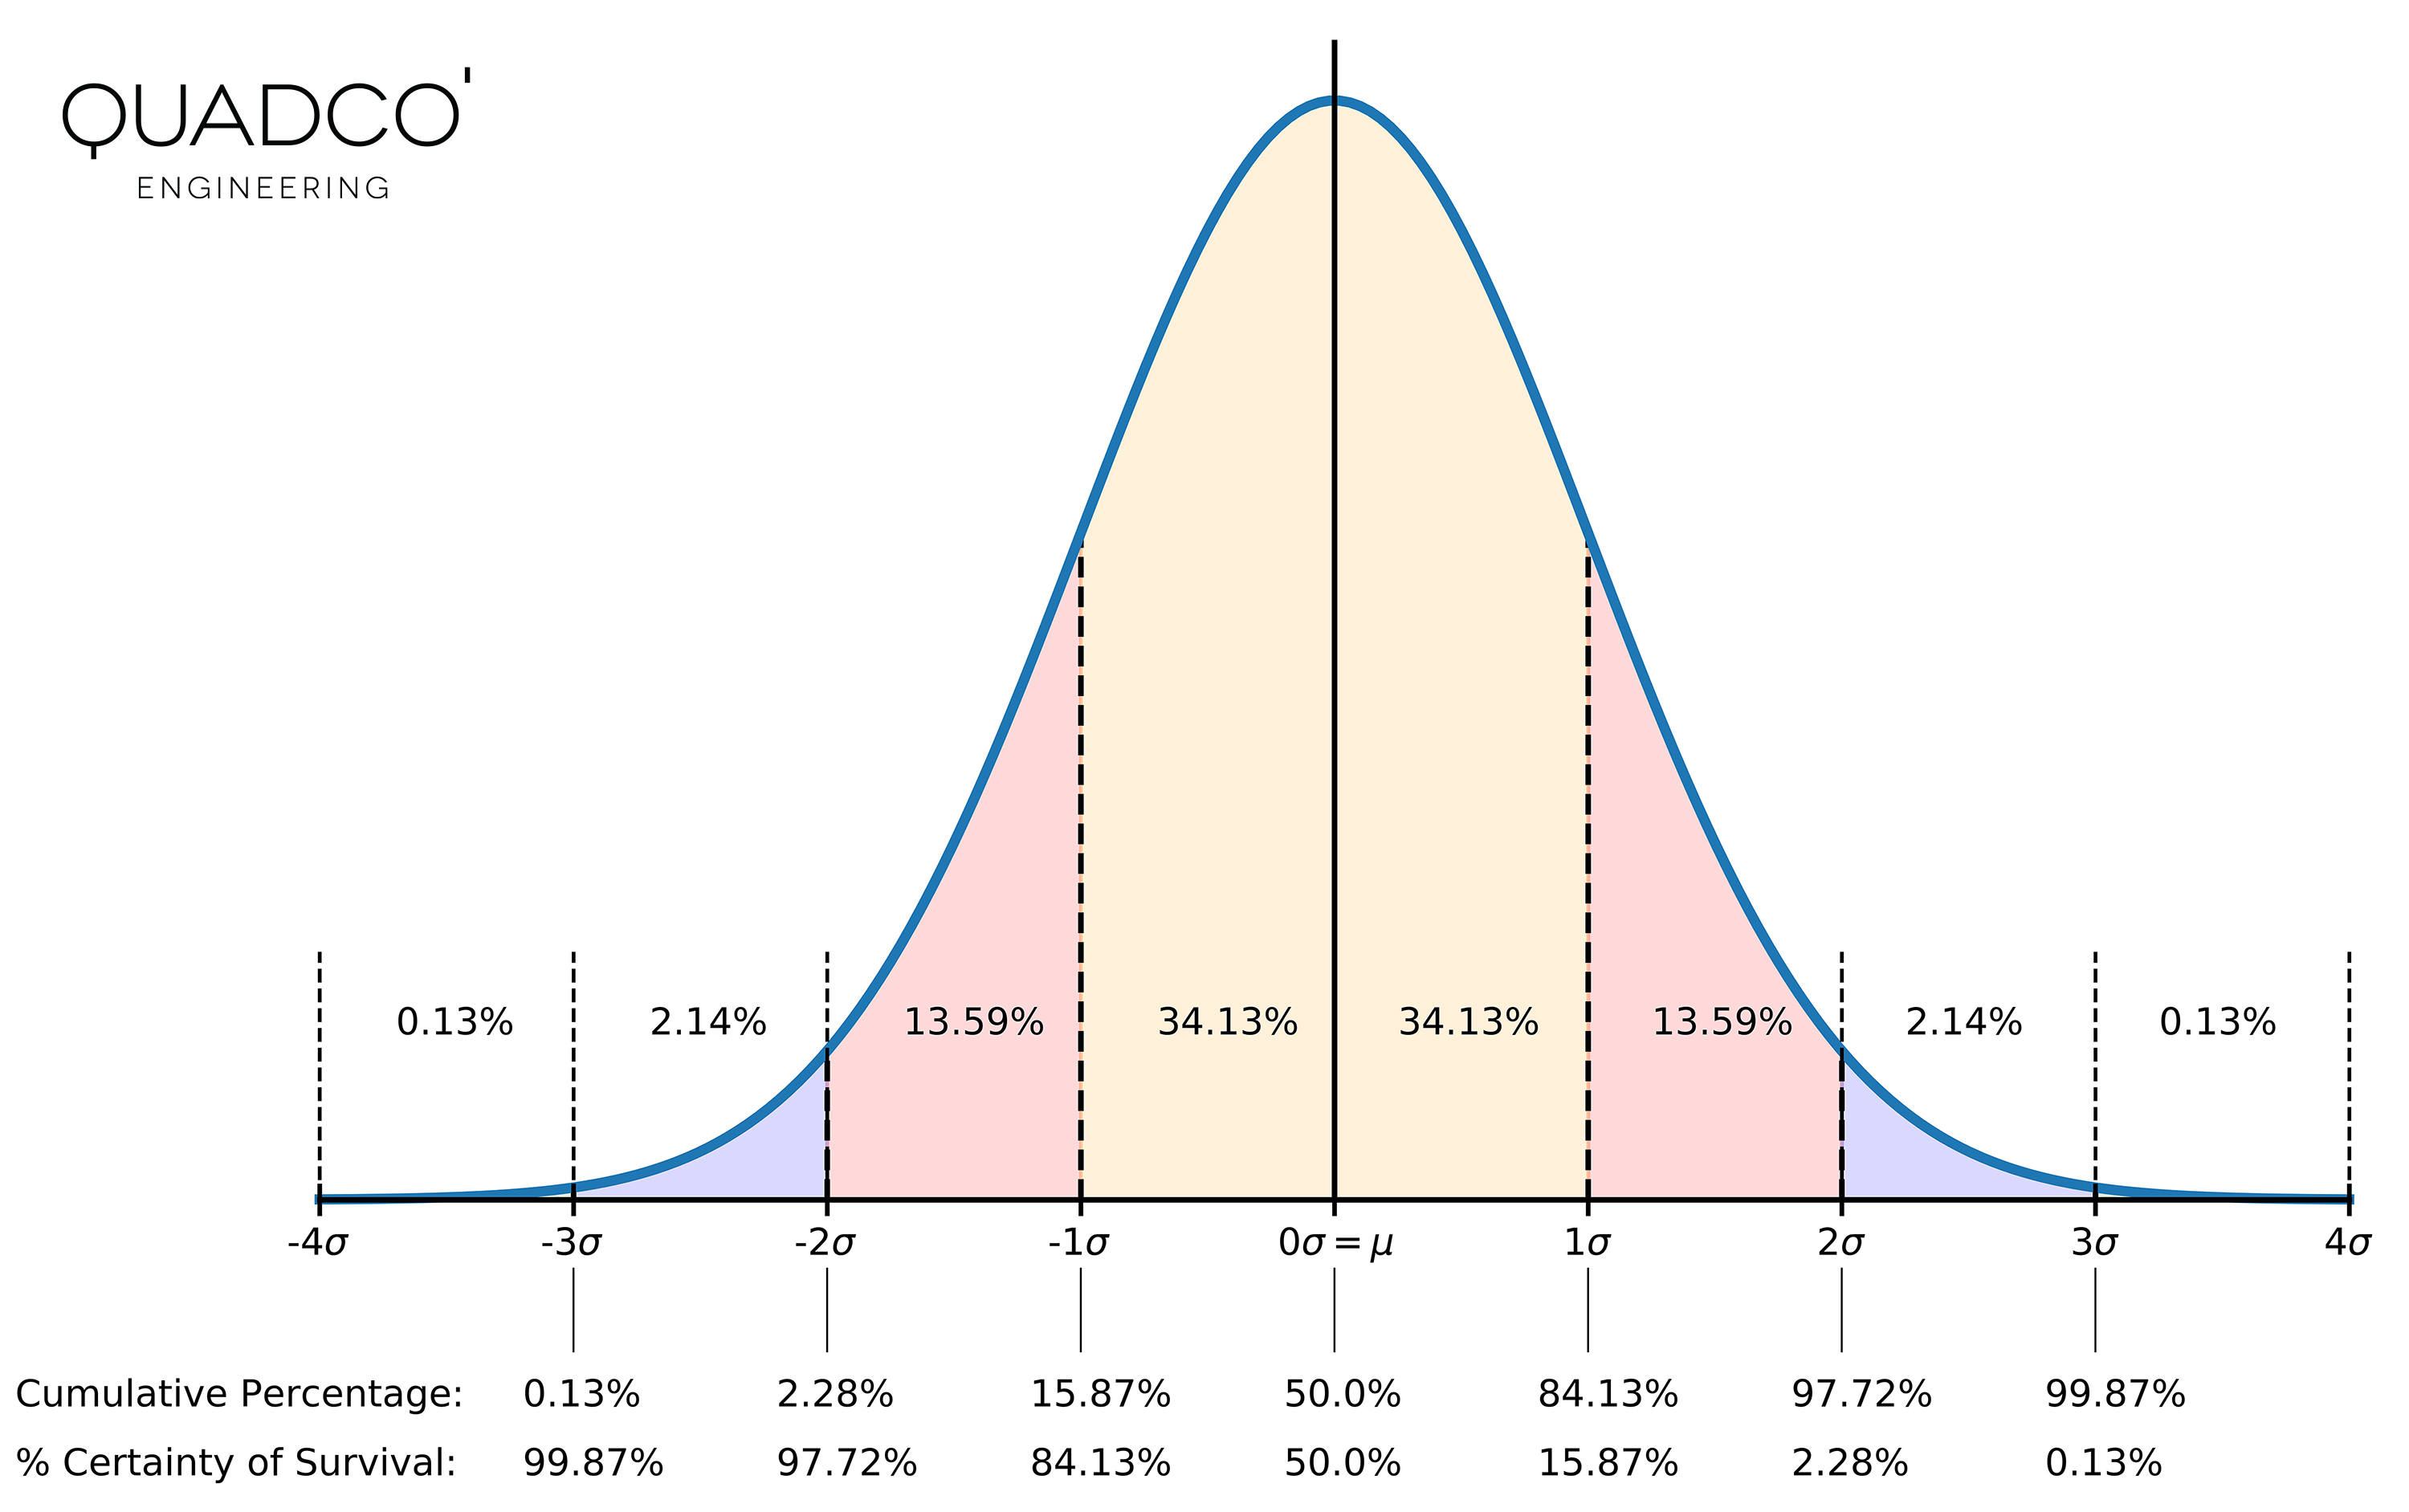 Normal distribution with associated certainty of survival